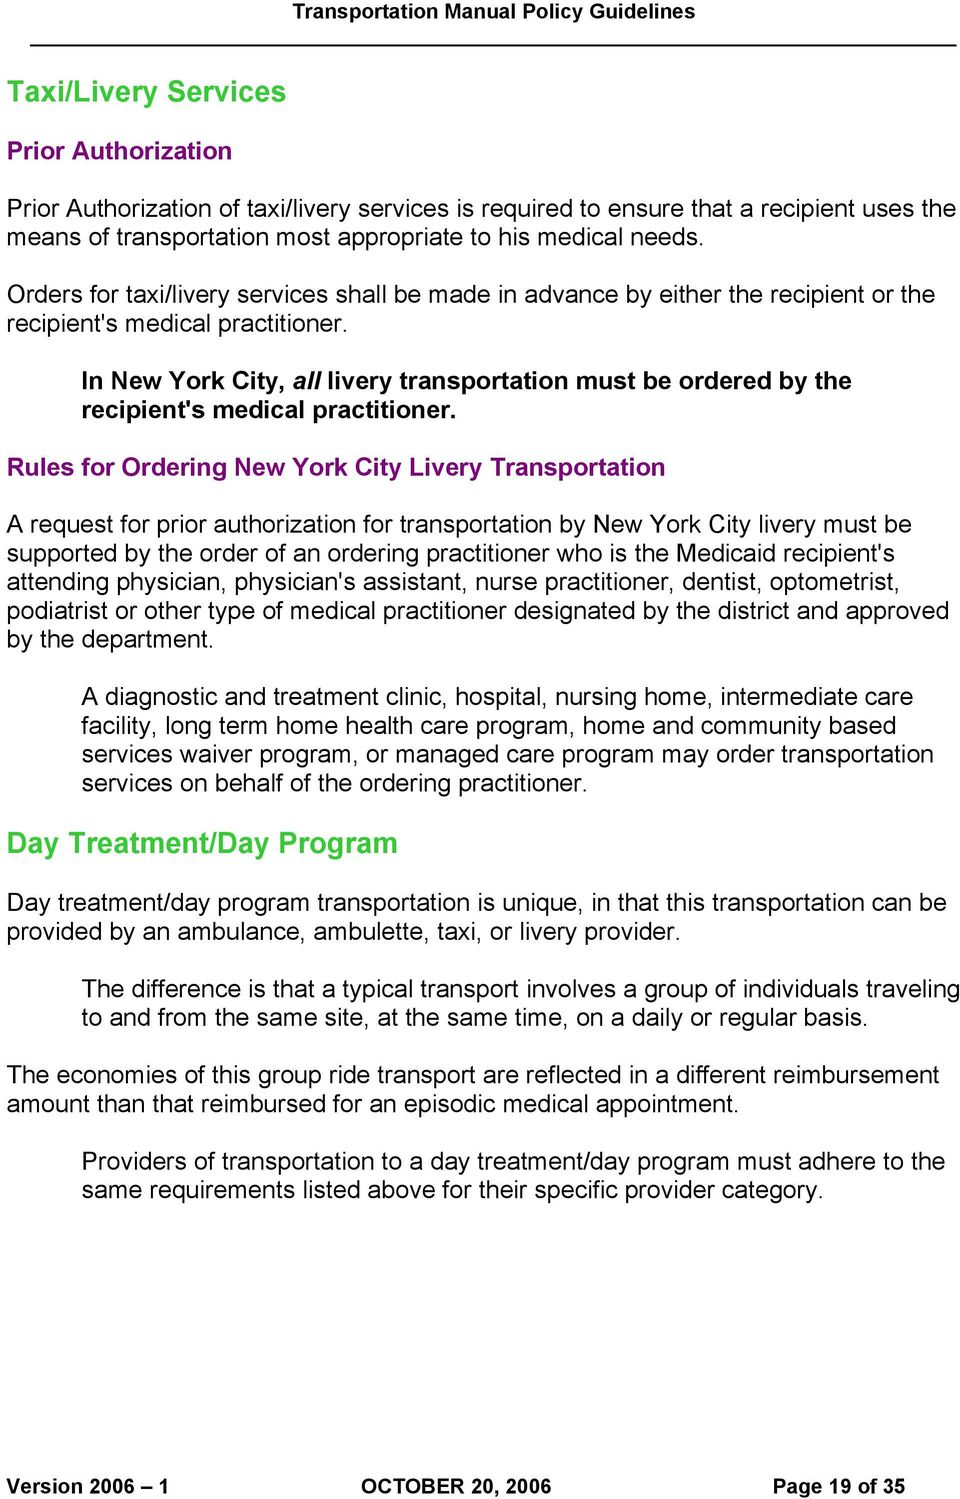 In New York City, all livery transportation must be ordered by the recipient's medical practitioner.